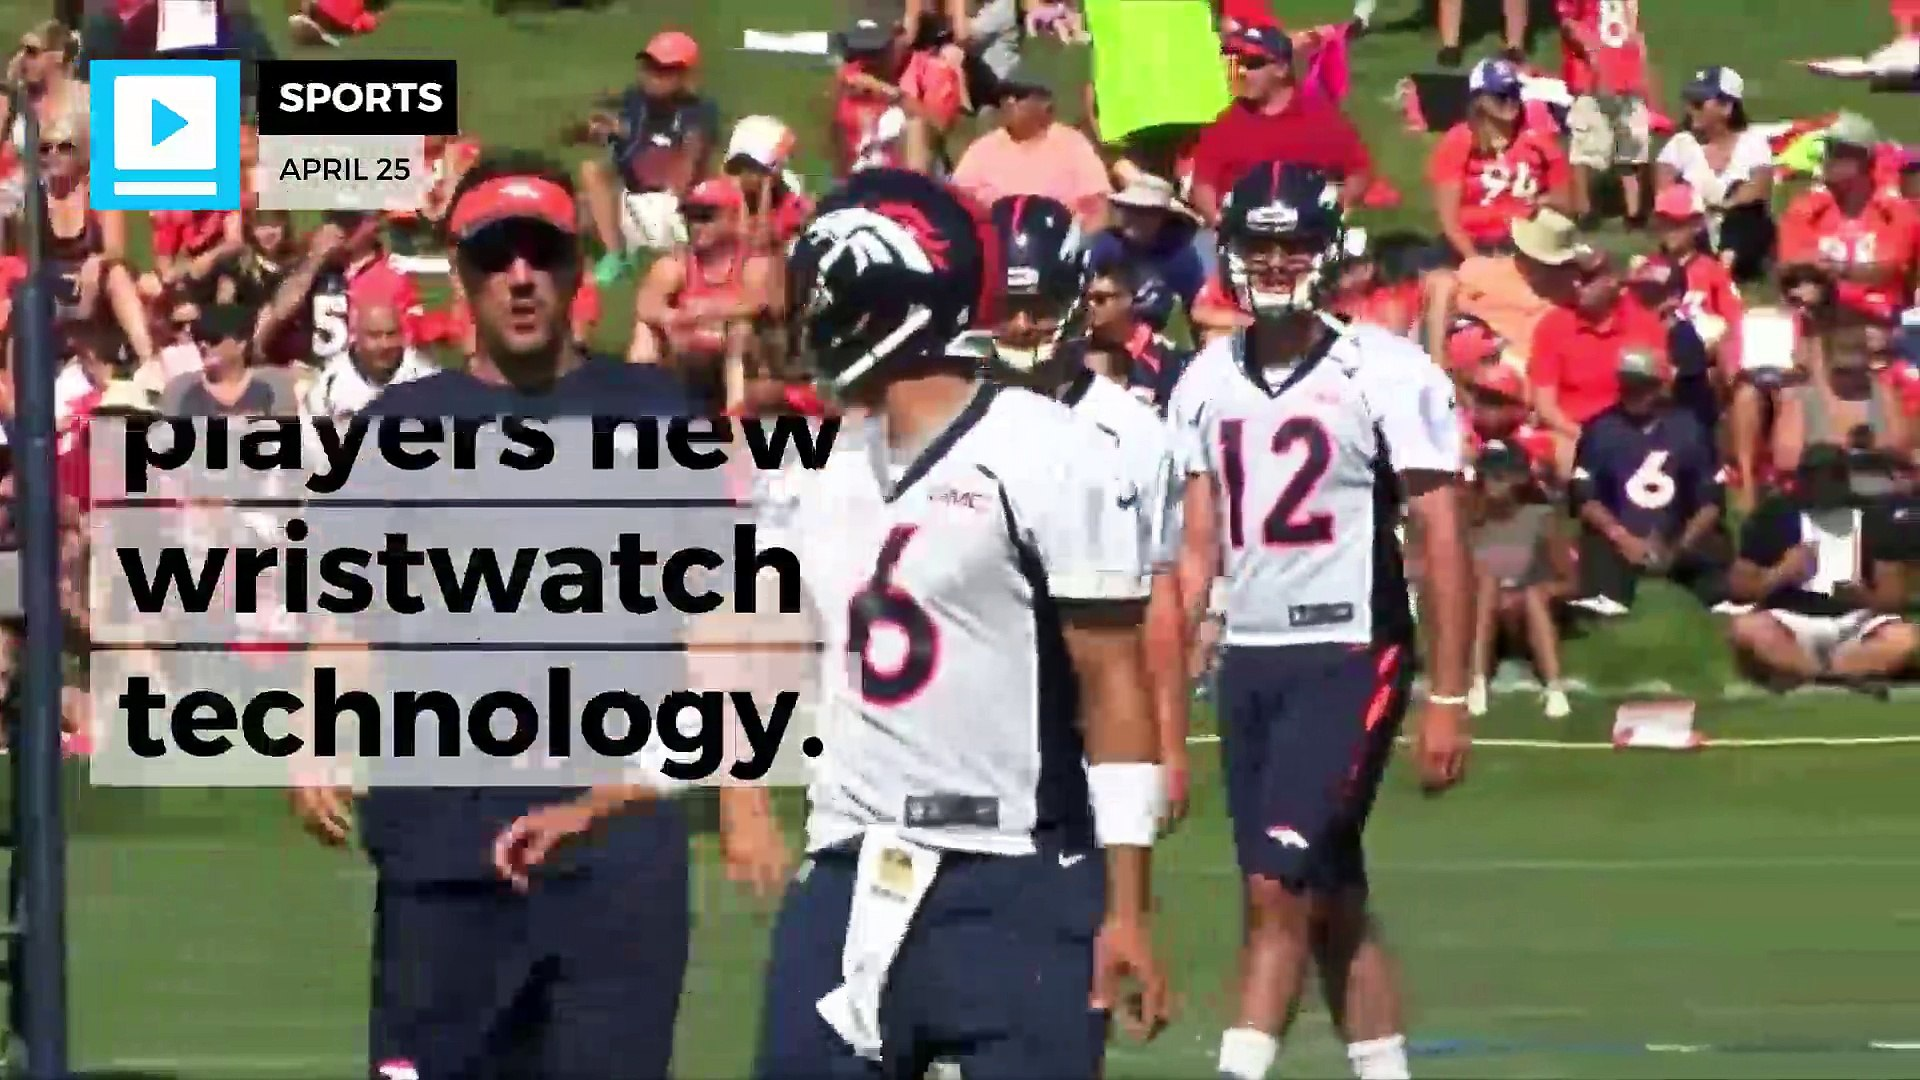 NFL players get new wristwatch technology